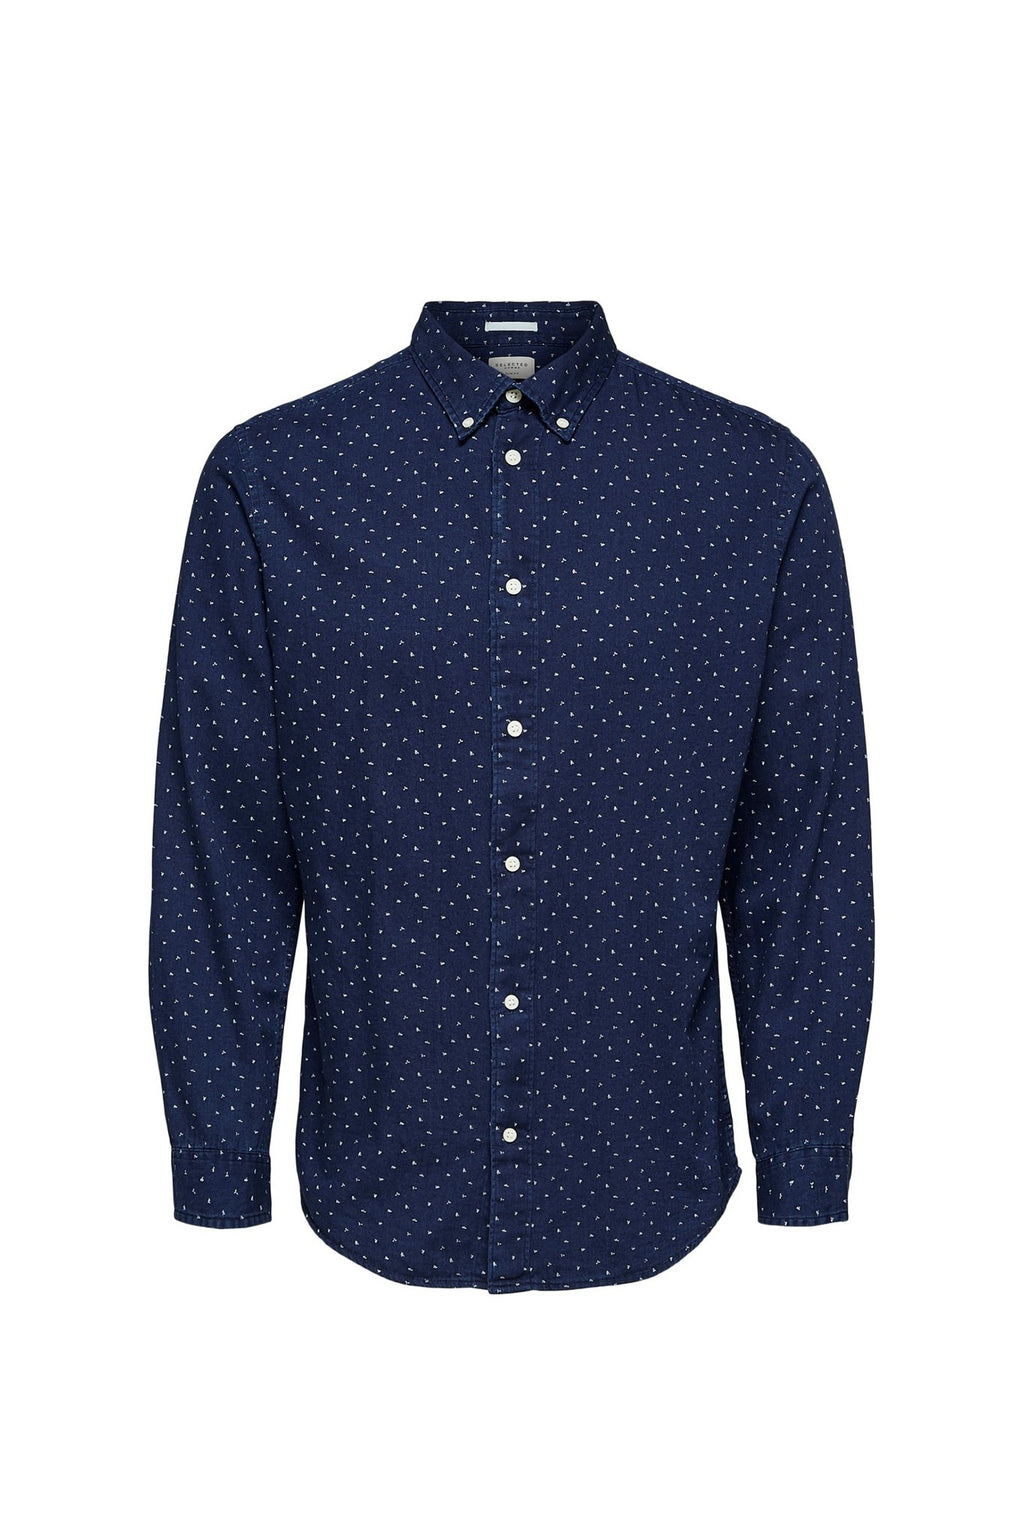 Nolan - Slim Fit - Shirt